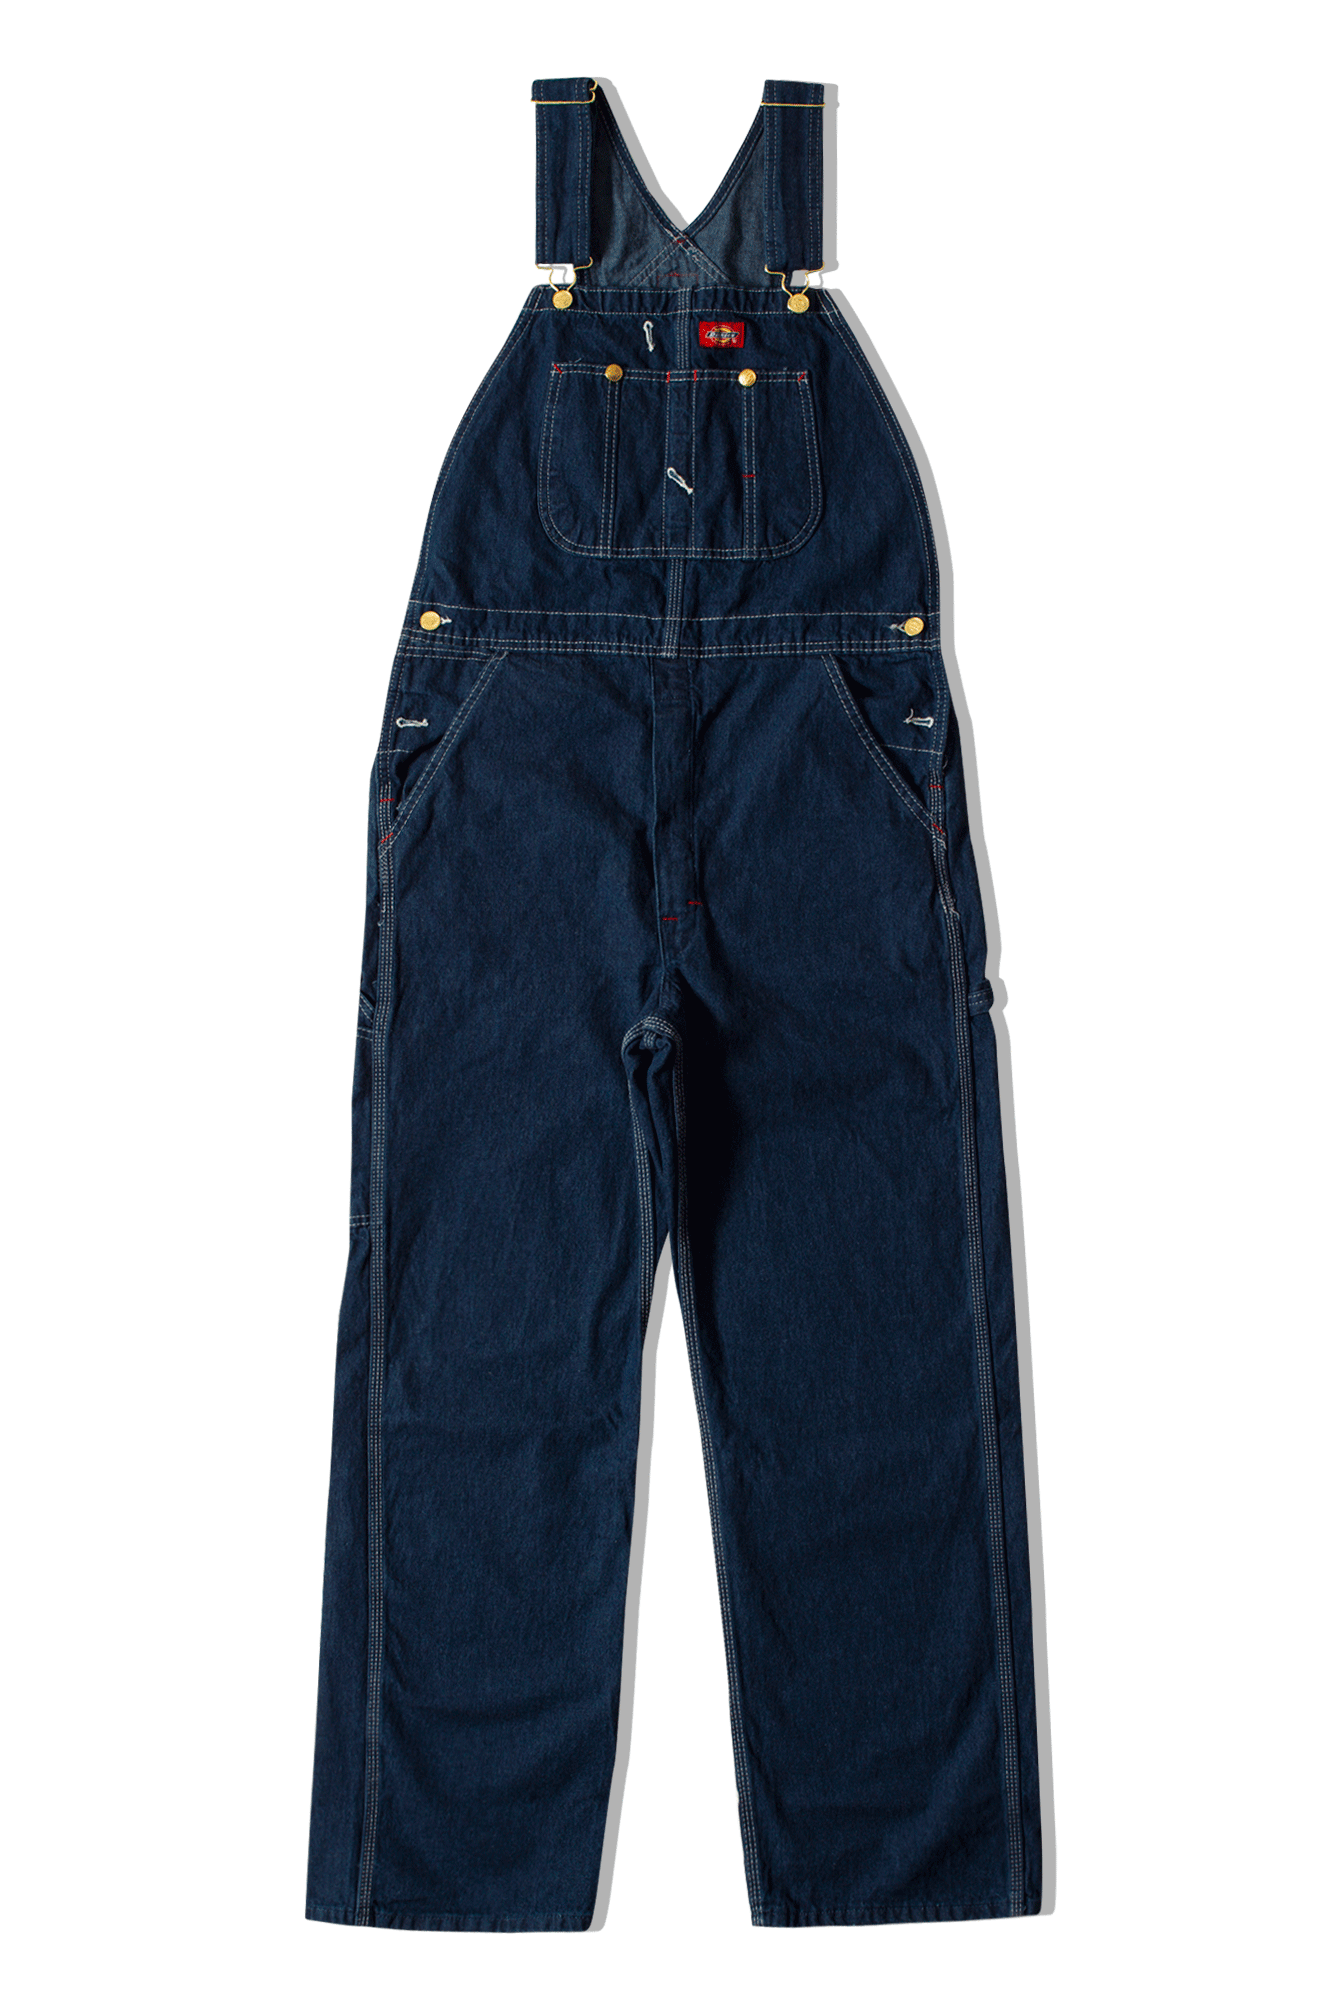 Dickies Salopette Men's Loose Fit Bib Overall Blu 681190067#BIBO#VERALL#27 - One Block Down